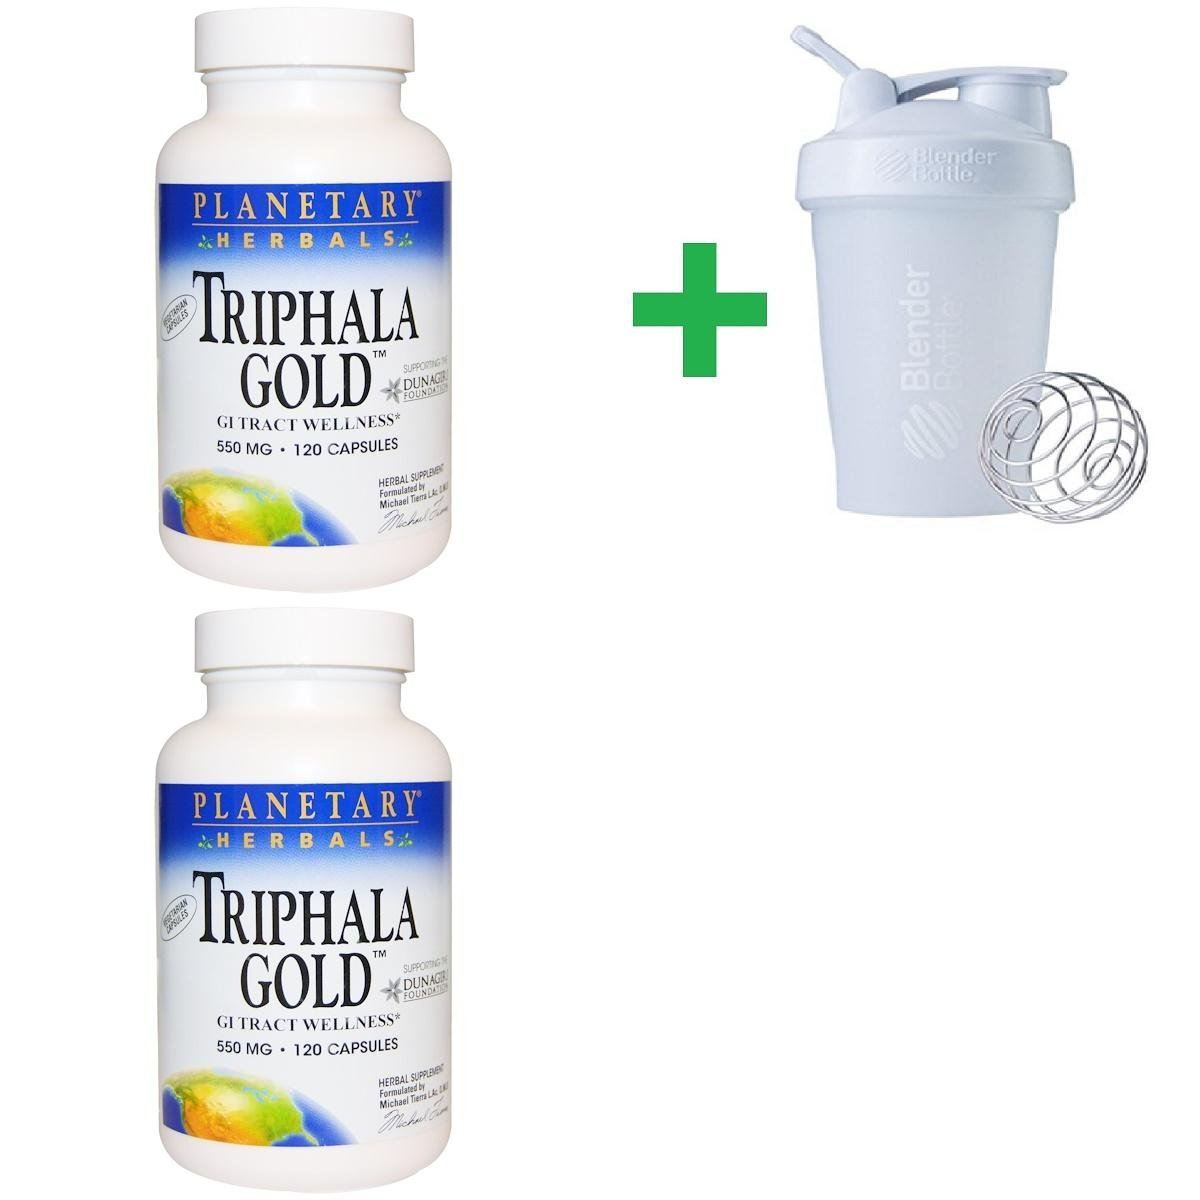 Planetary Herbals, Triphala Gold, GI Tract Wellness, 550 mg, 120 Capsules(2 PCS)+ Assorted Sundesa, BlenderBottle, Classic with Loop, 20 oz